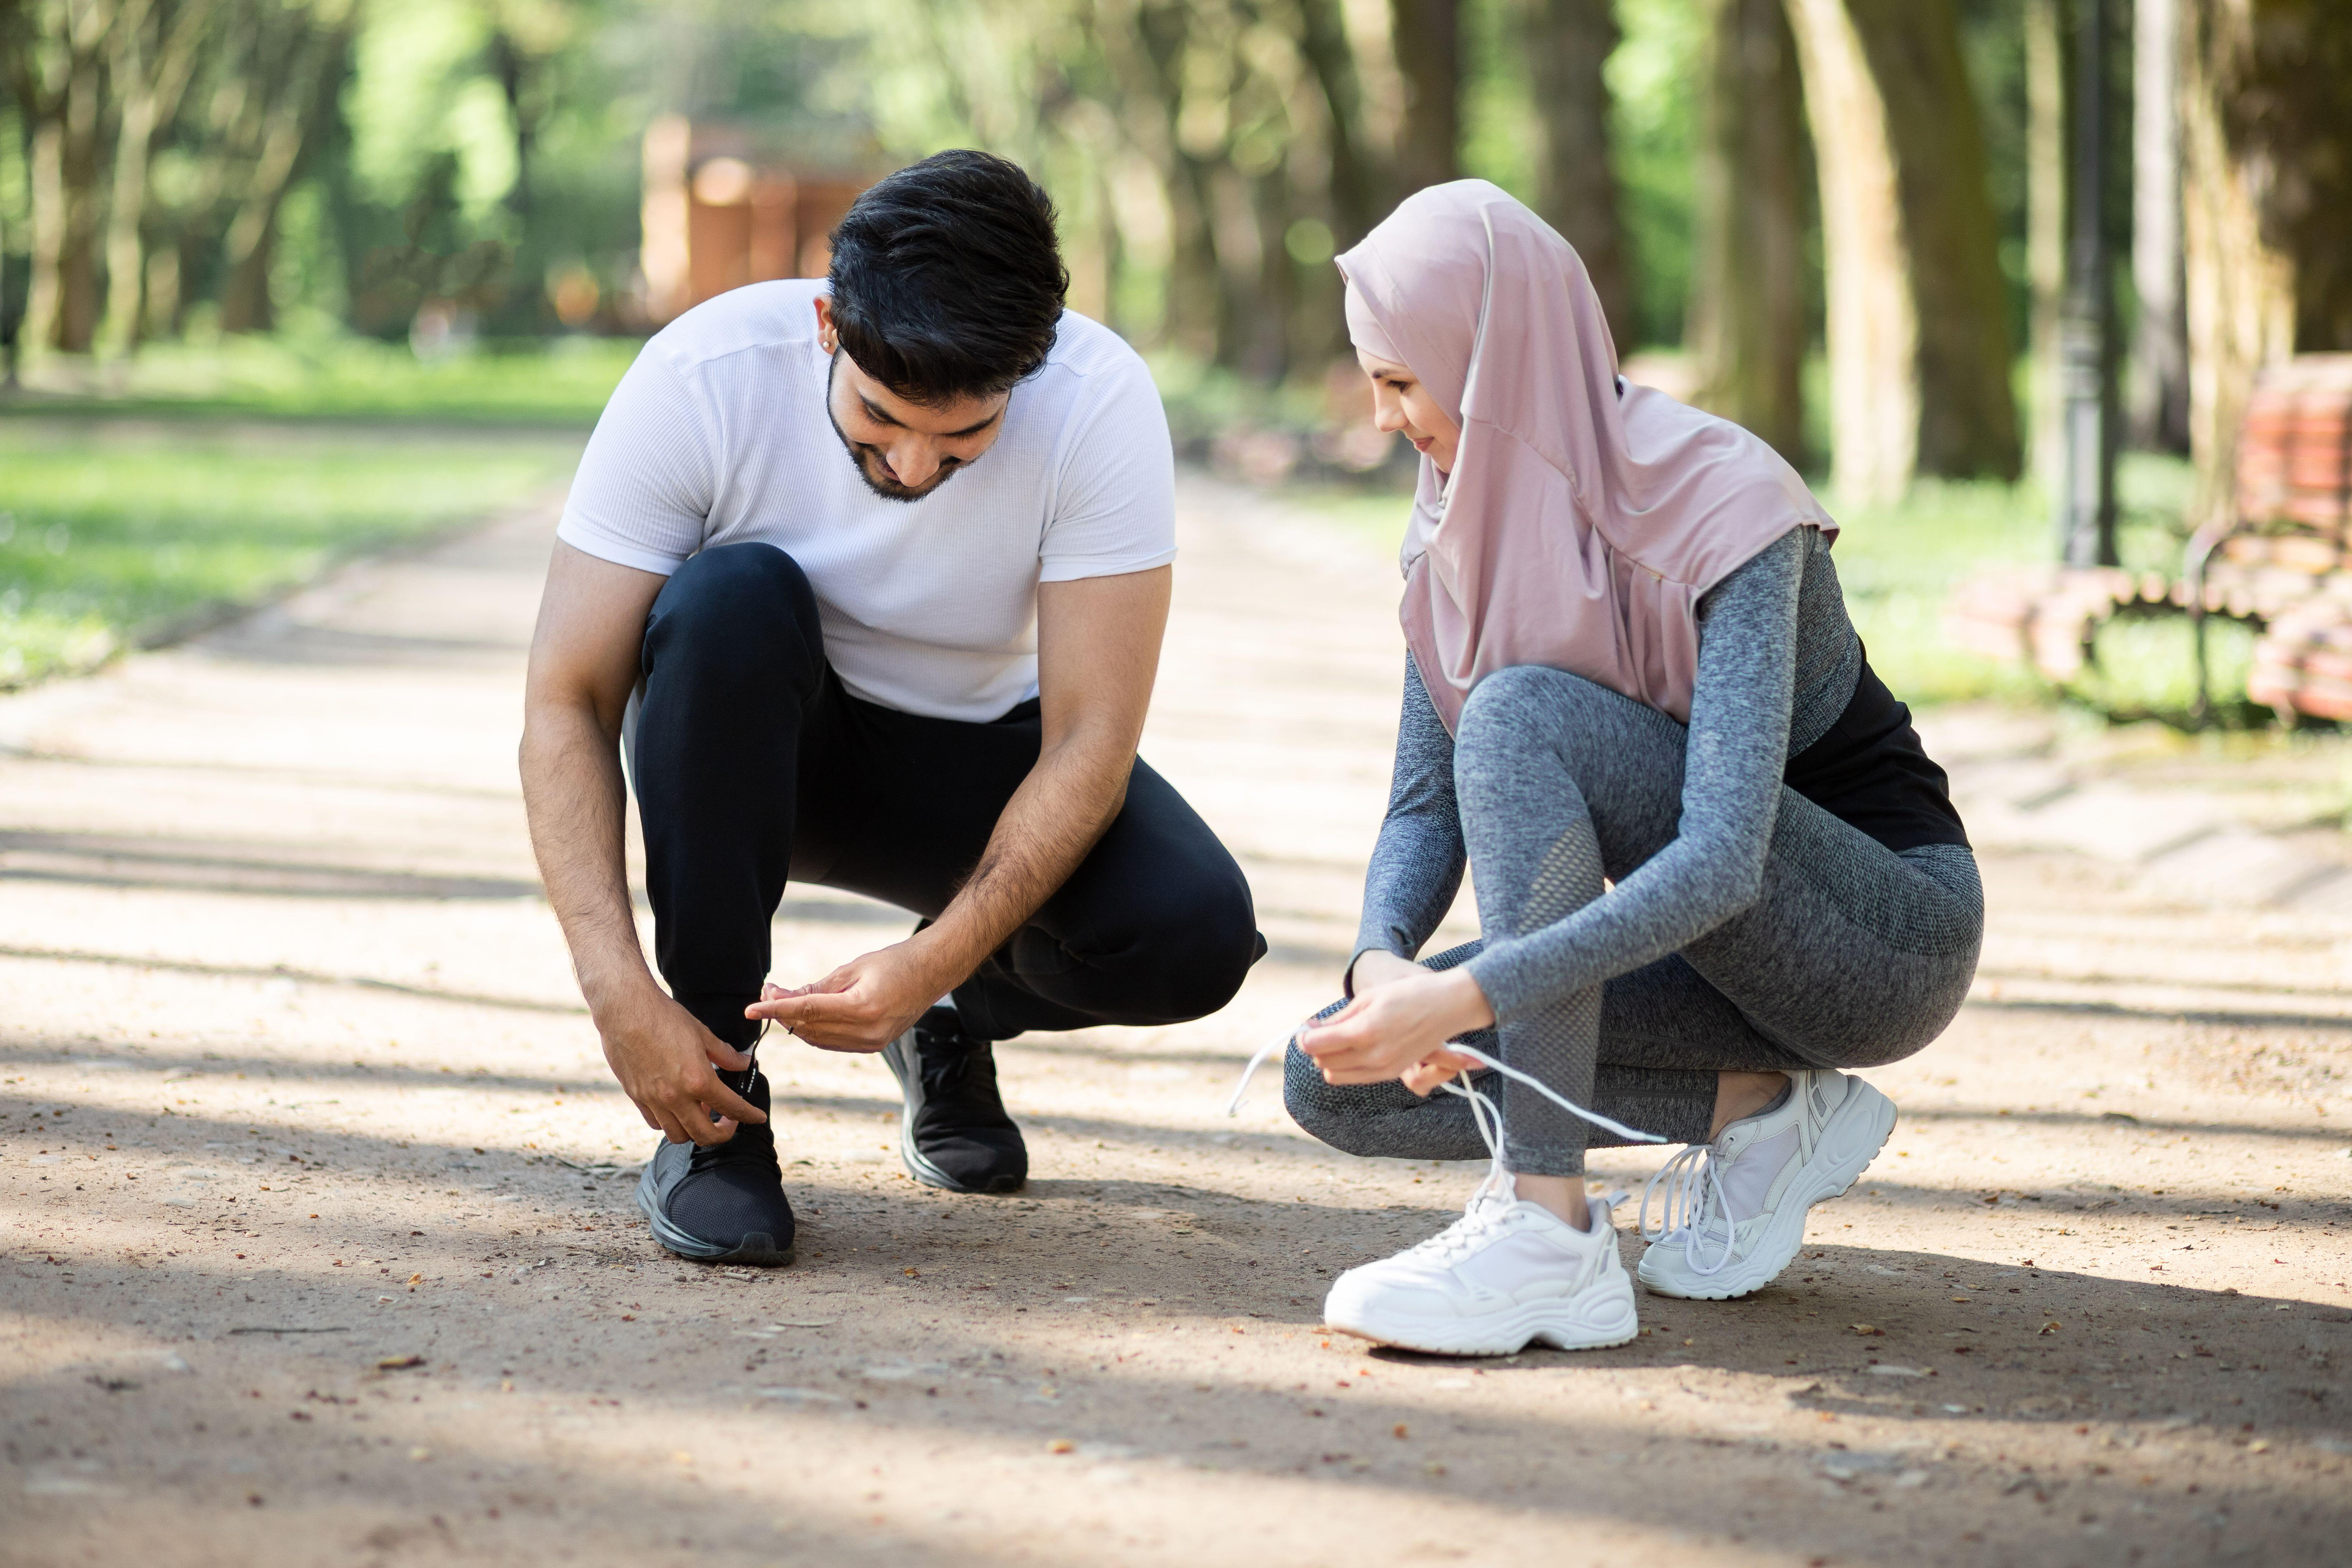 Muslim man and woman in hijab tying laces on sport sneakers before morning run at green park. Young active family training together on fresh air.